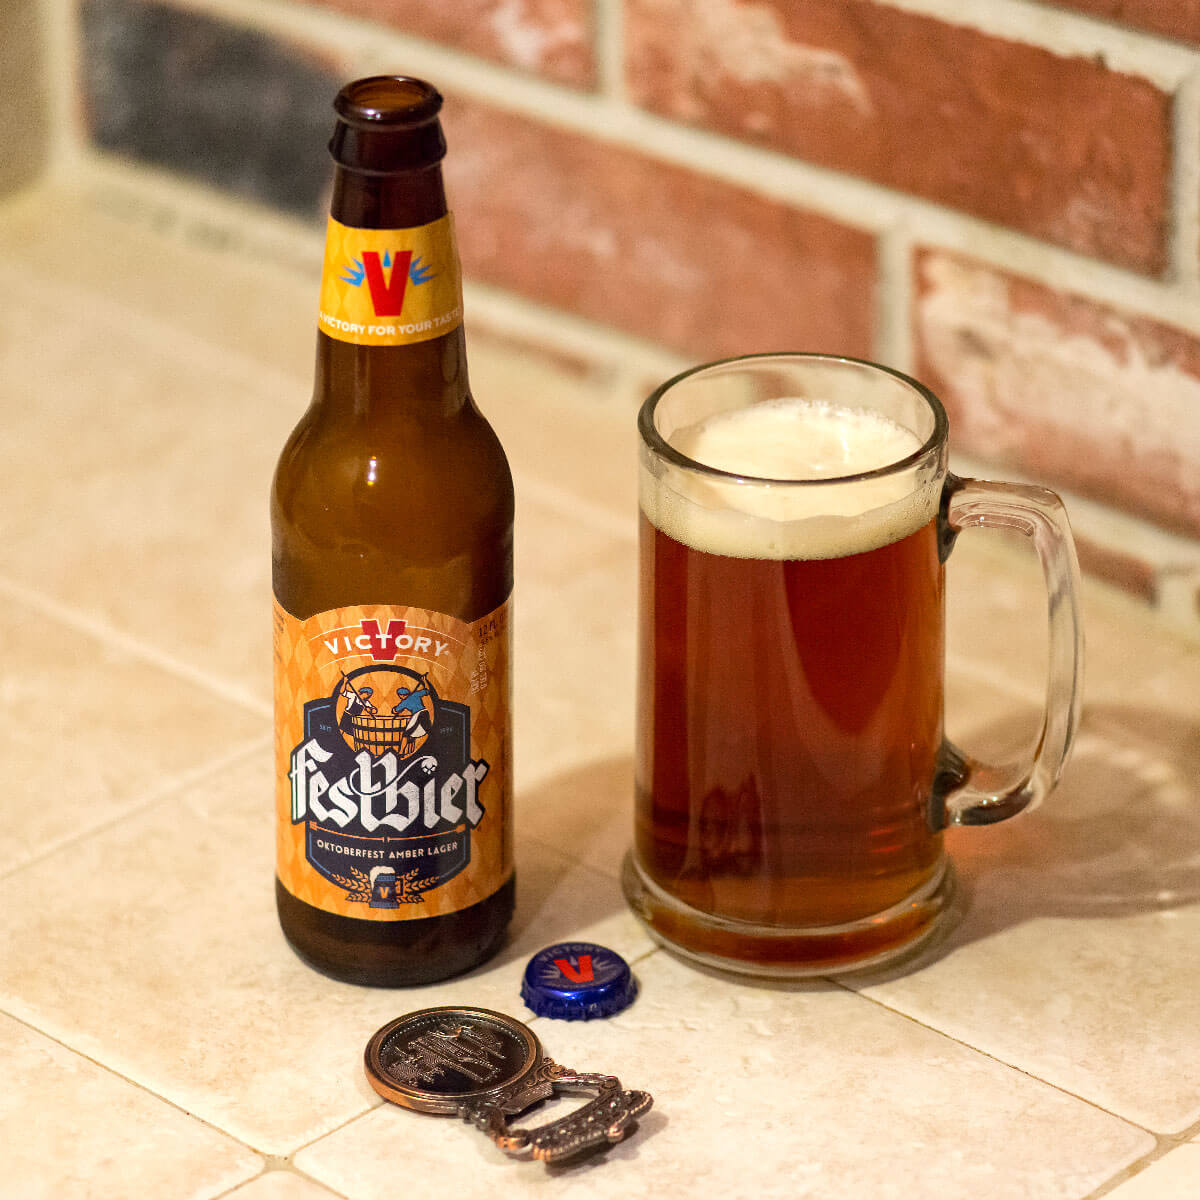 Festbier, a German-style Märzen Lager by Victory Brewing Co.